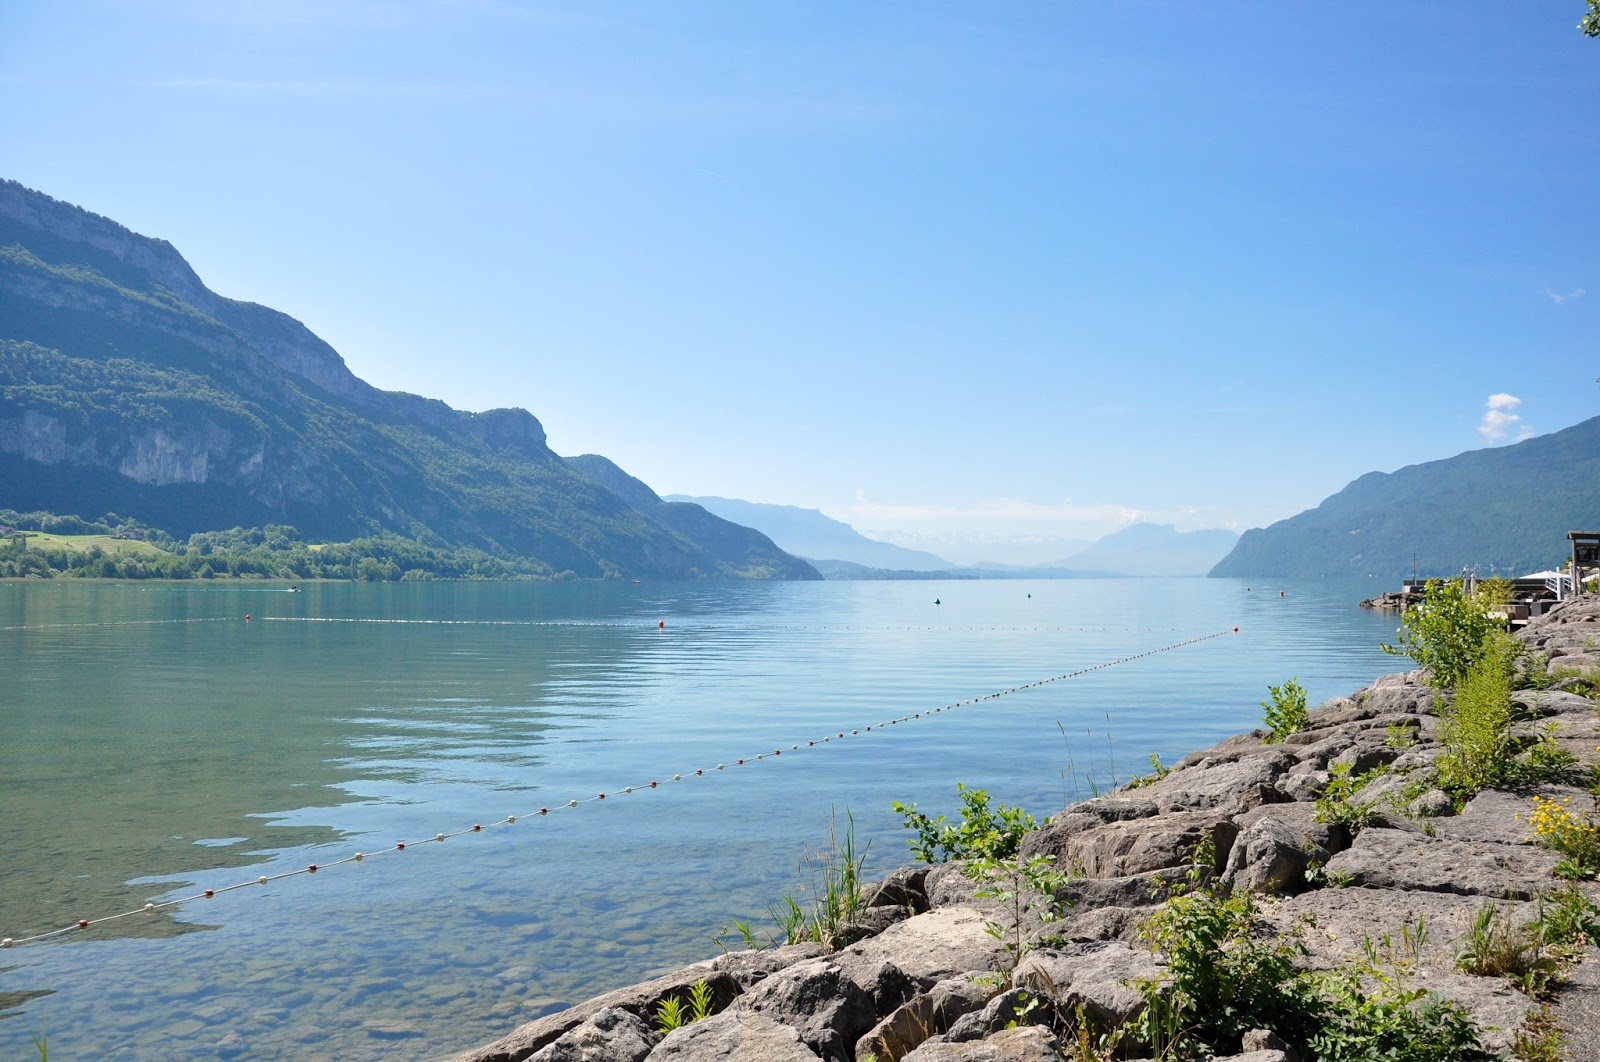 A view of Lake Bourget, France's largest lake